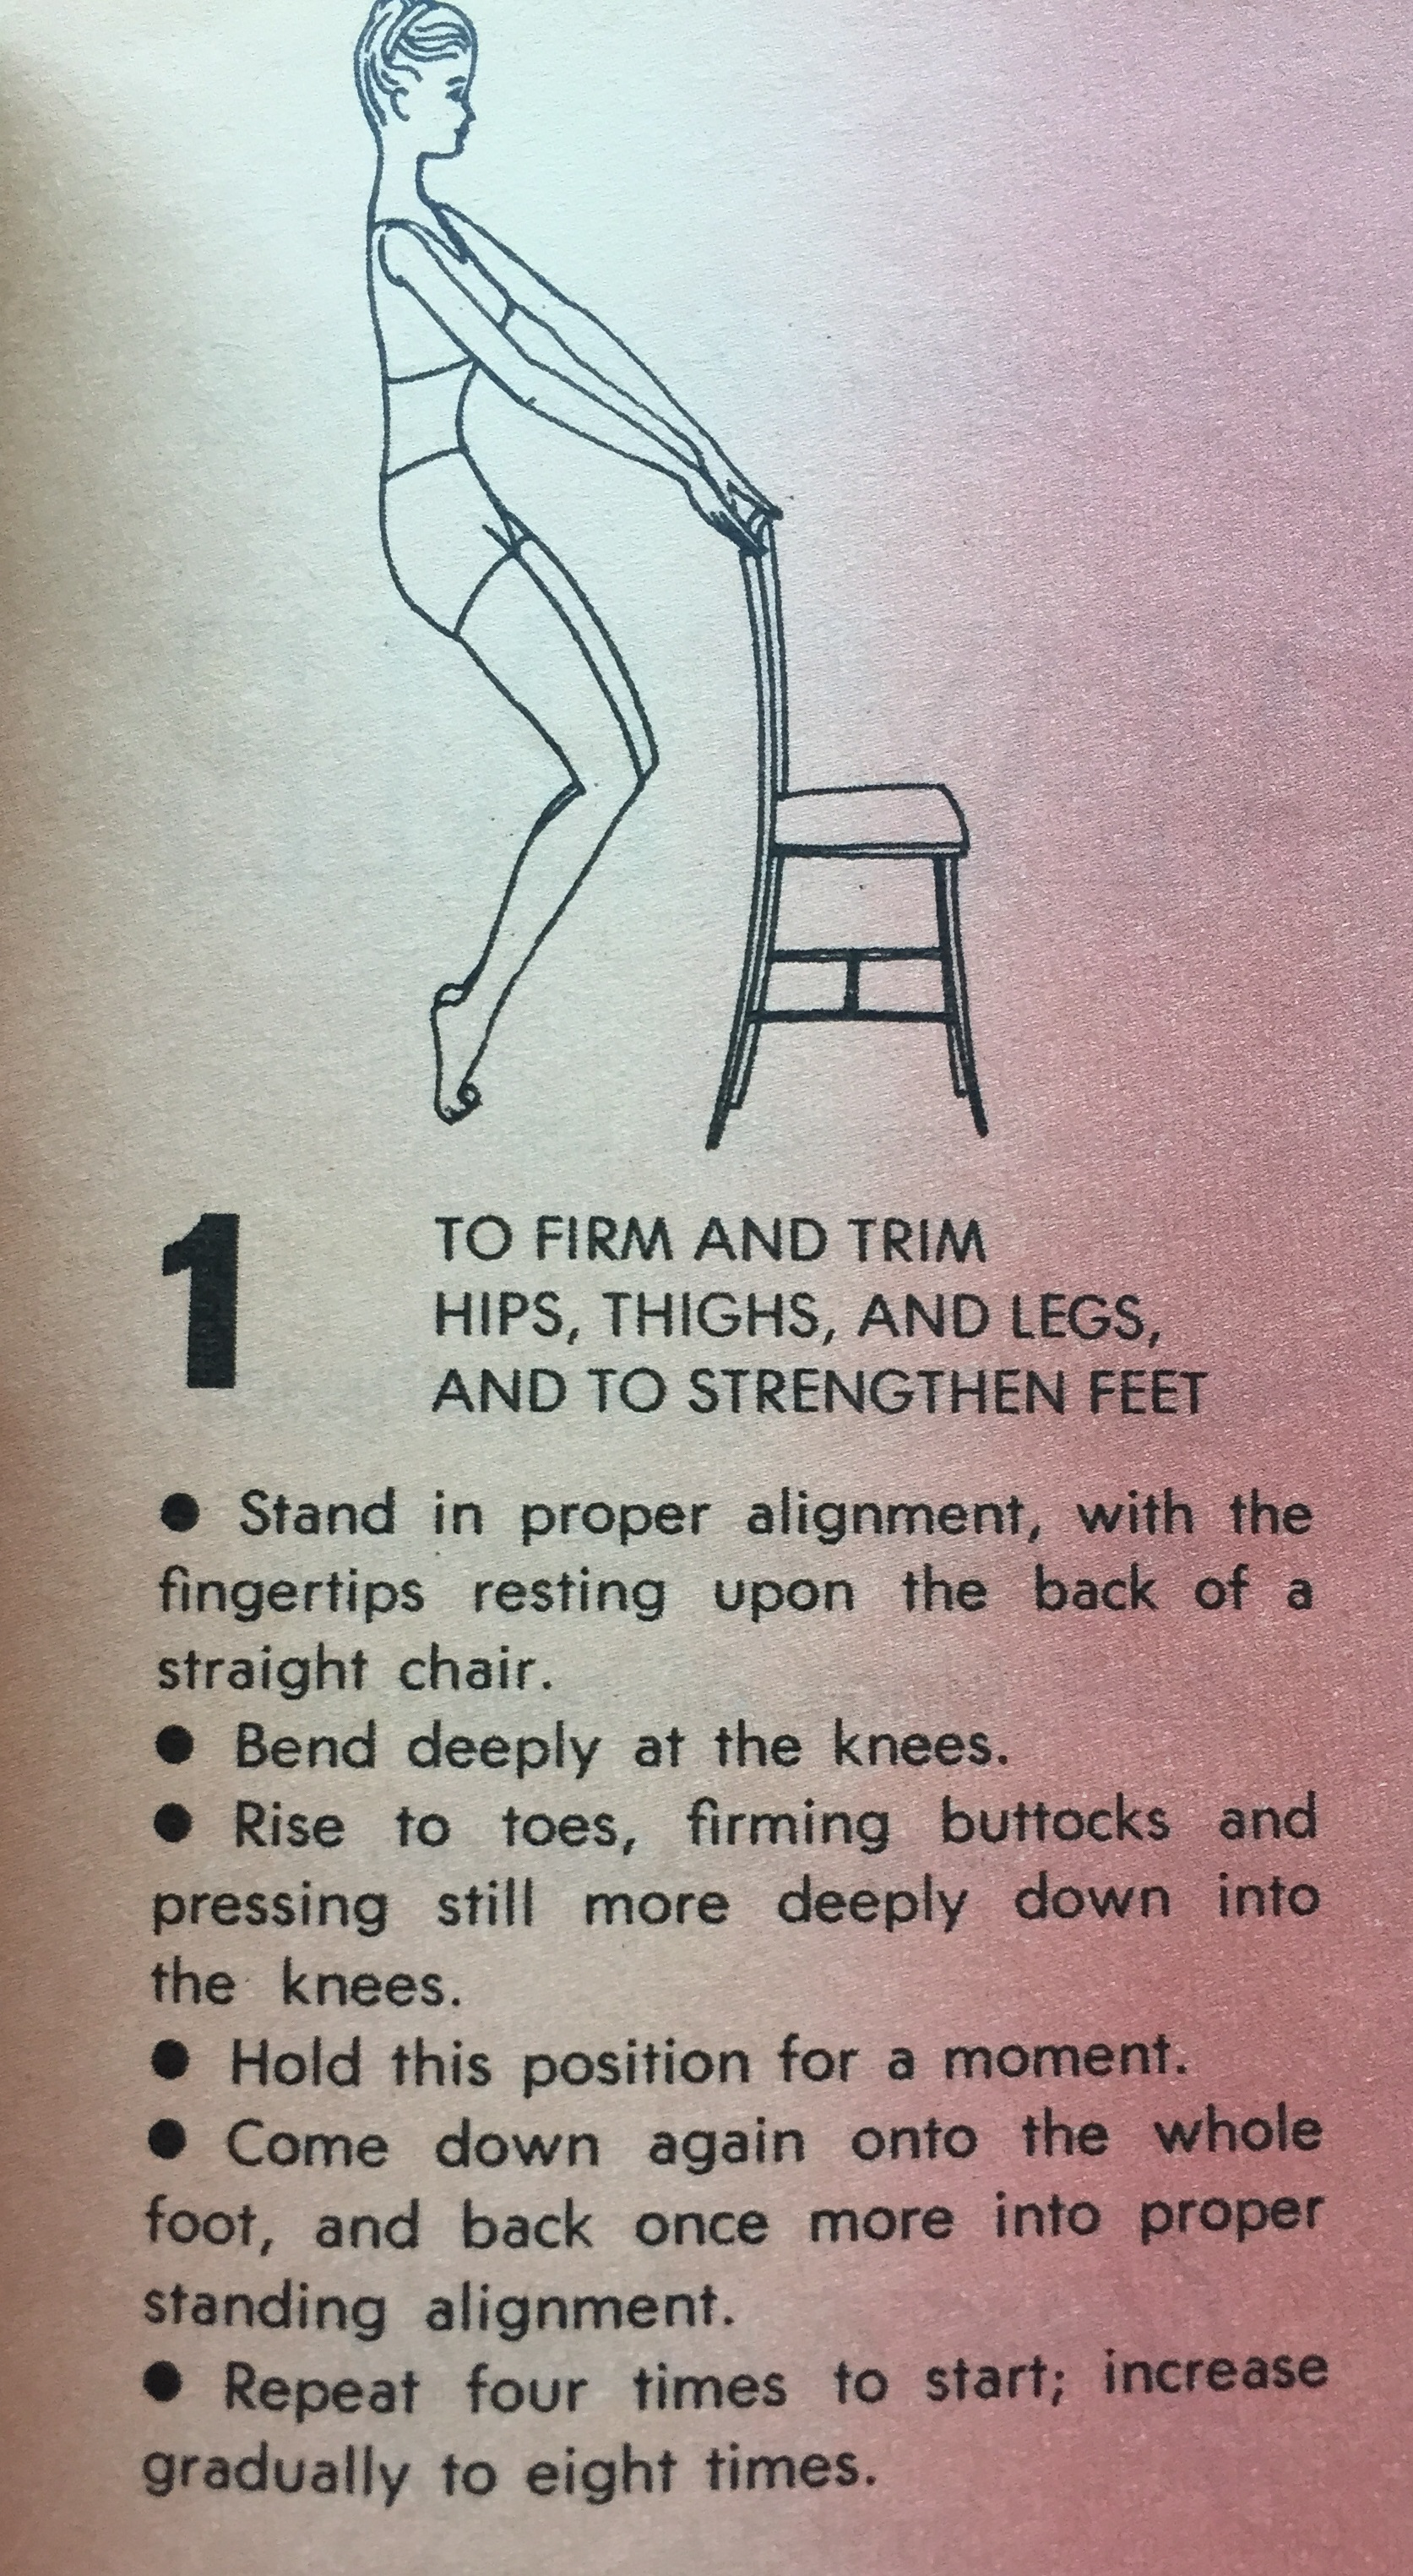 edo posture chair black plastic hire firm your natural girdle exercise advice from 1962 what